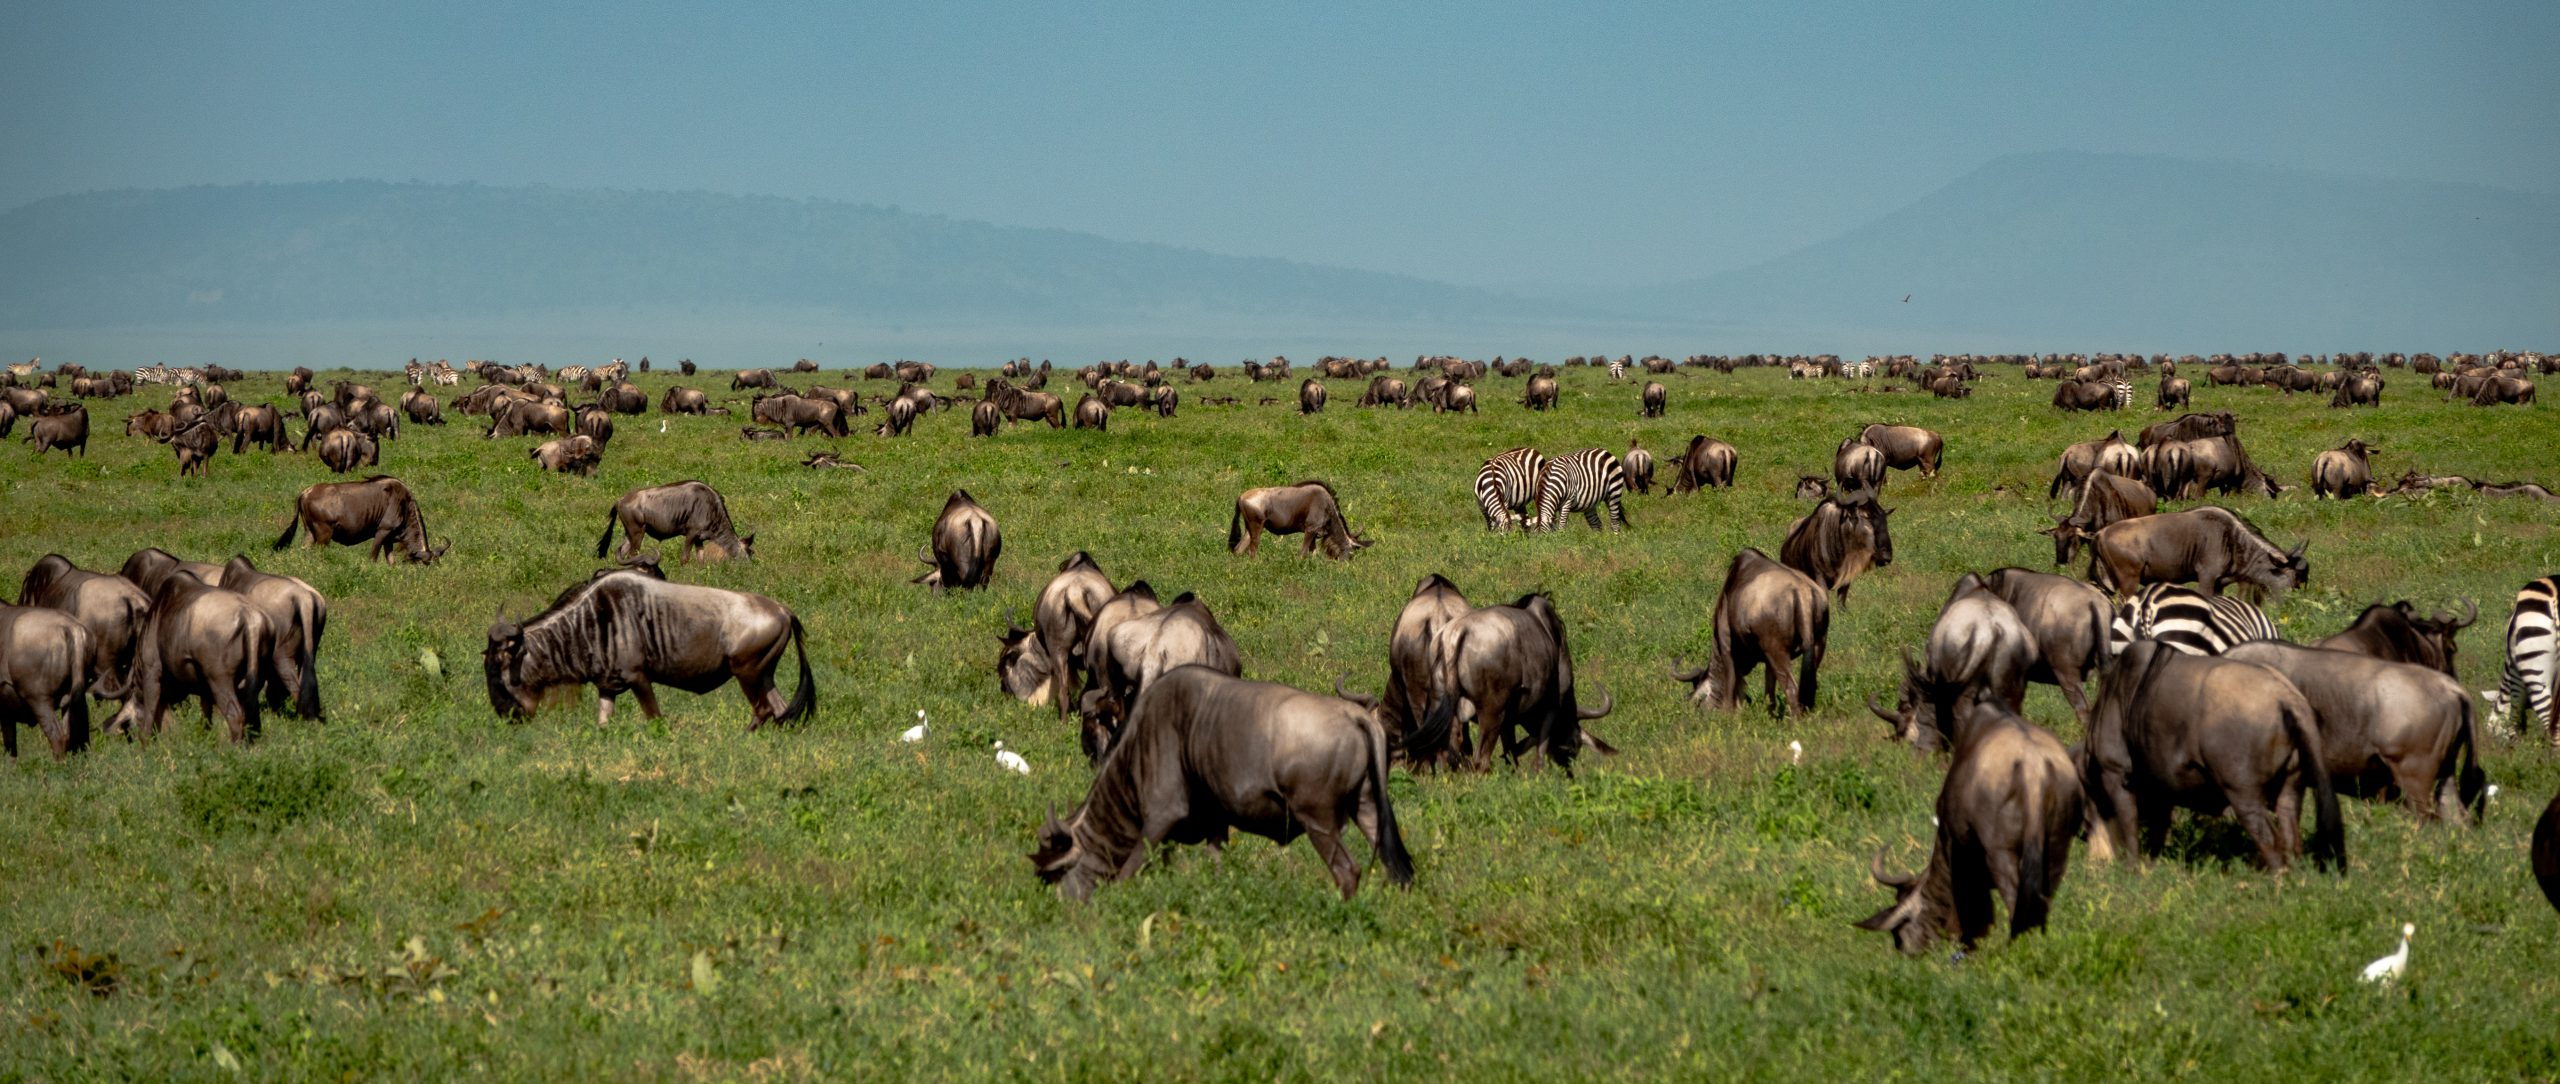 Grote migratie in Serengeti National Park Tanzania